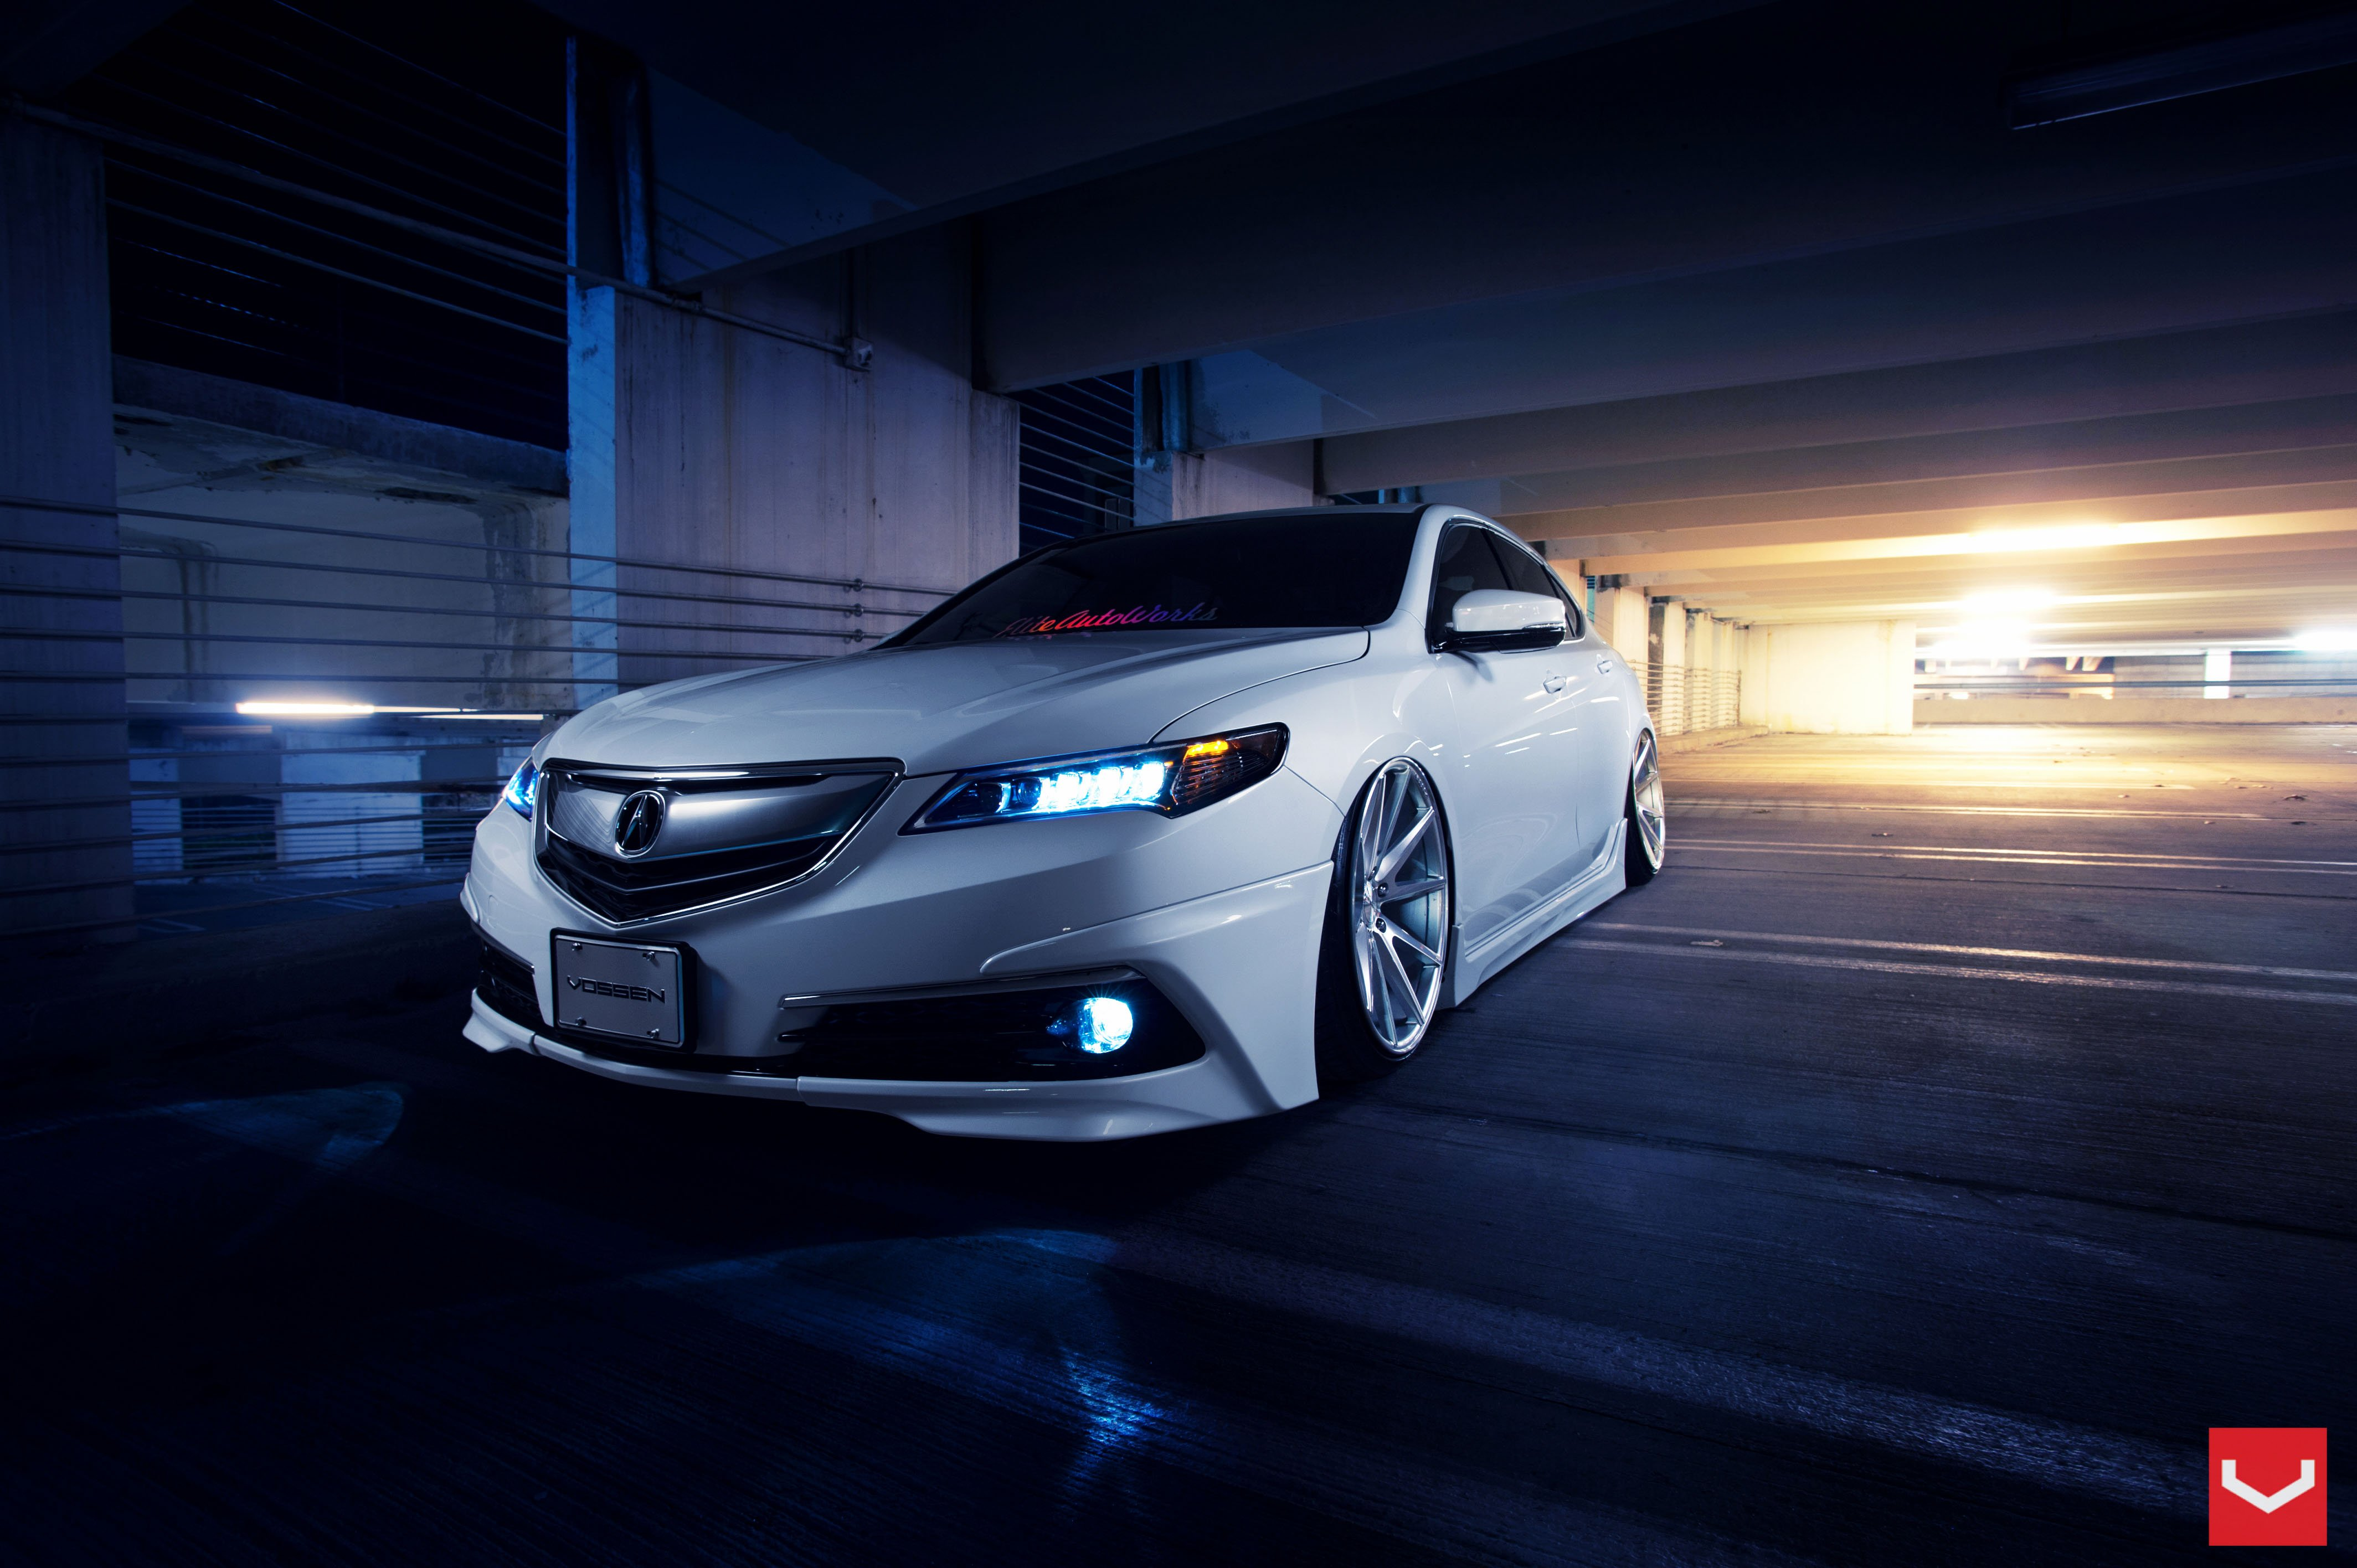 Acura Tlx Colors >> Acura TLX vossen wheels tuning cars wallpaper | 4256x2832 | 572384 | WallpaperUP